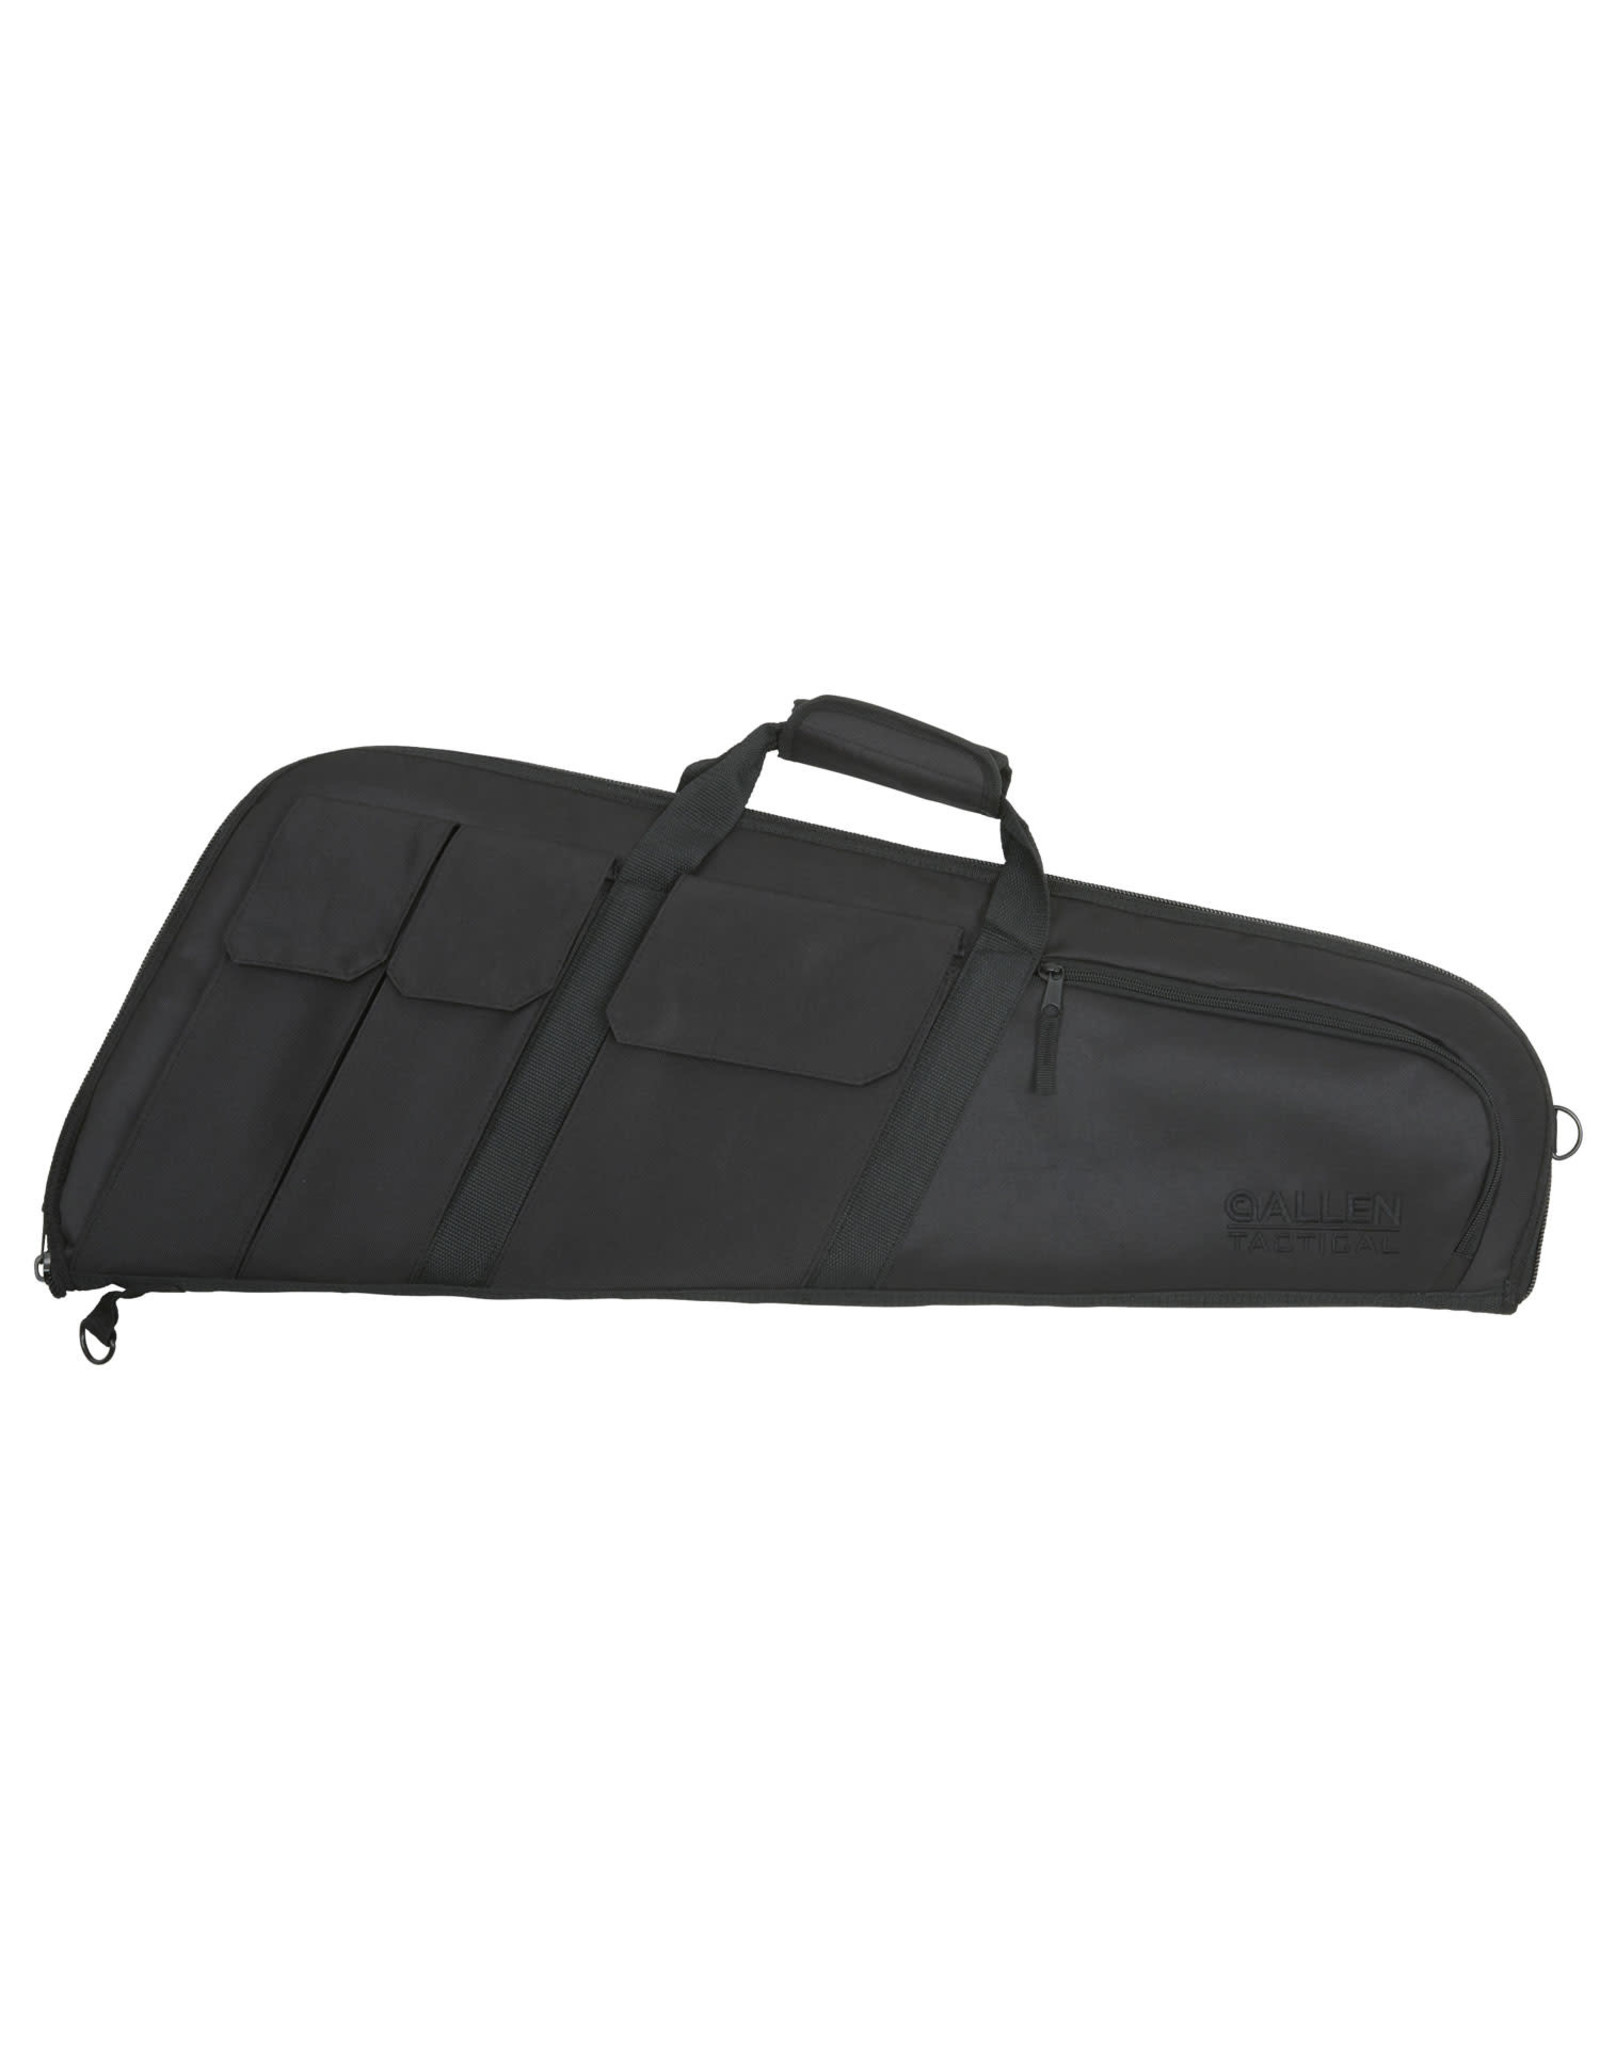 Allen Allen Wedge Tactical Case 32""